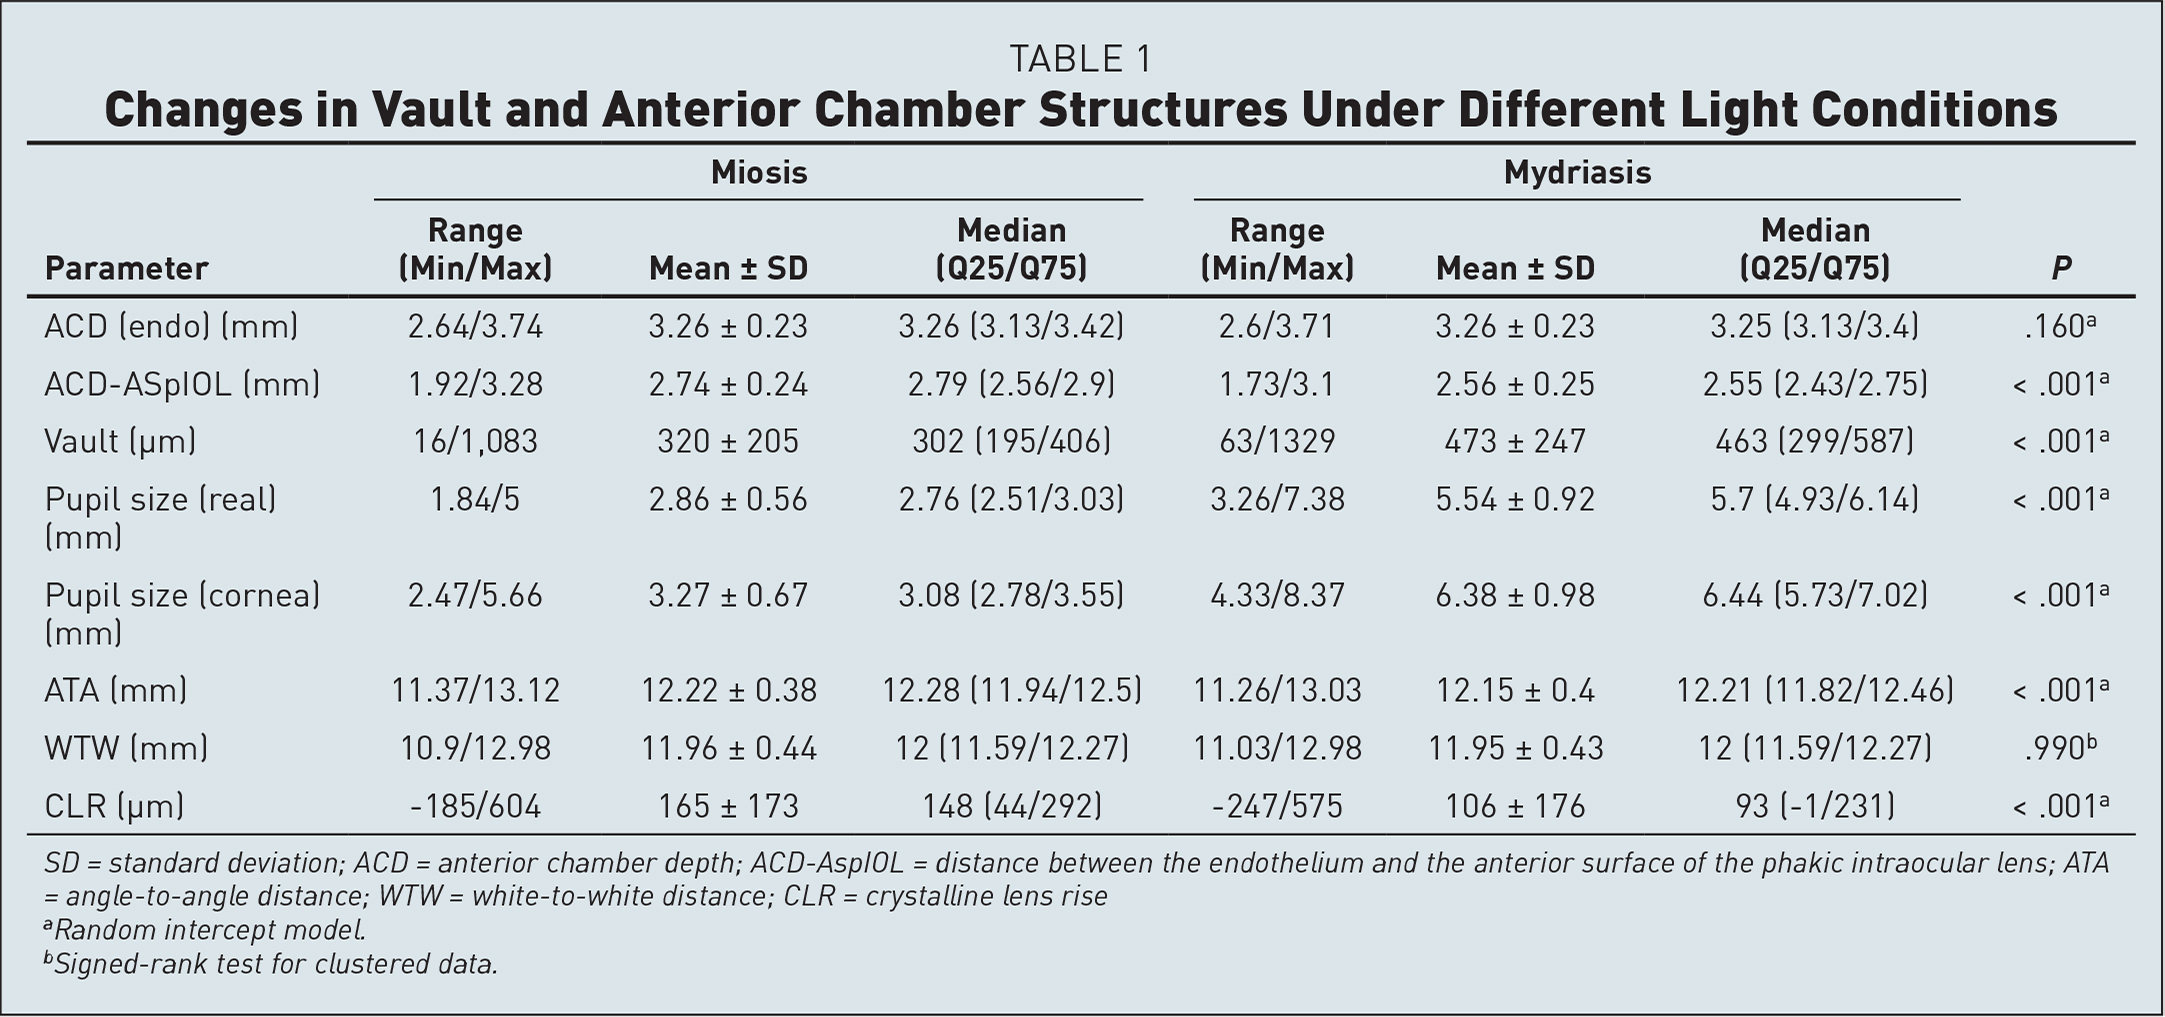 Changes in Vault and Anterior Chamber Structures Under Different Light Conditions